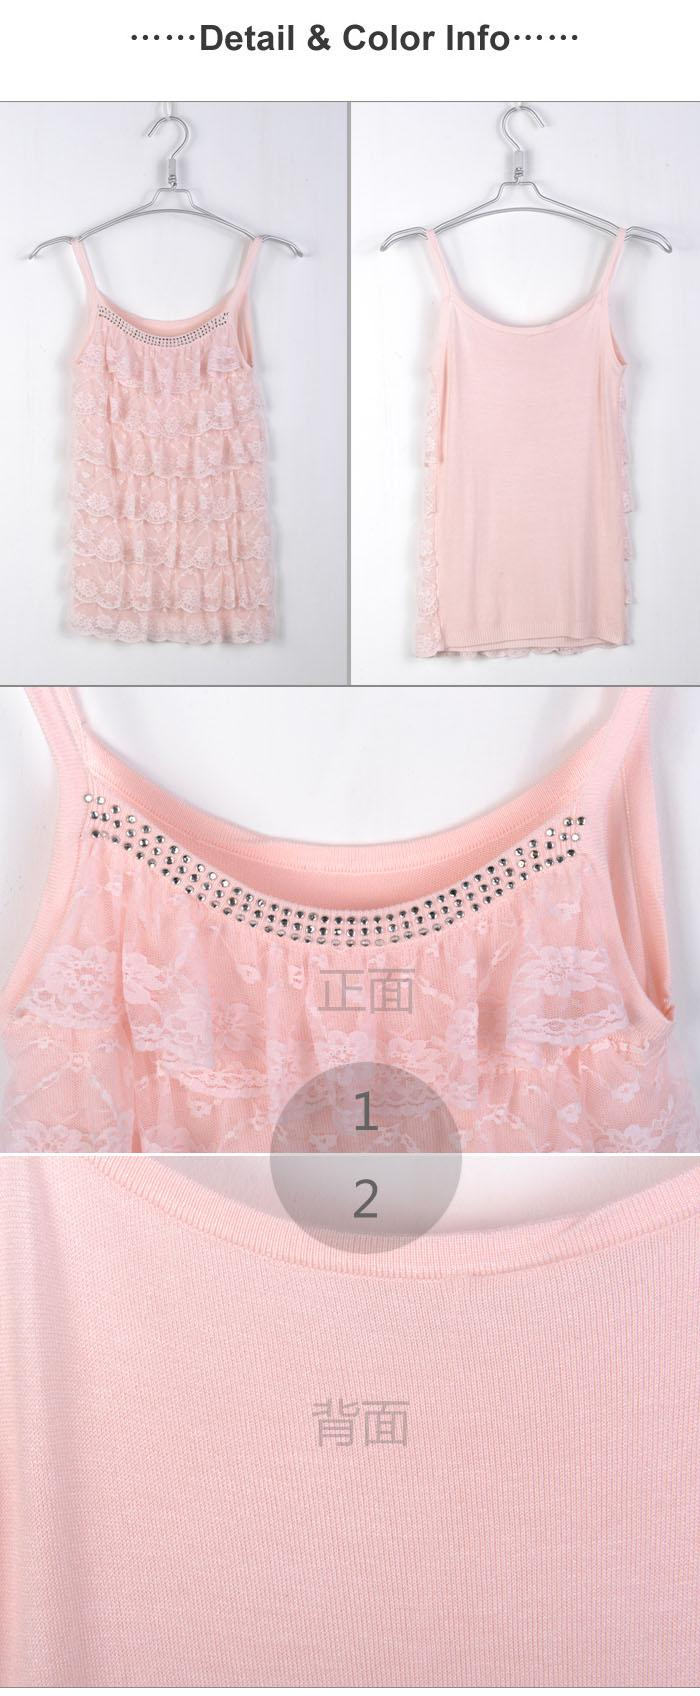 Hot-Sale-Women-Summer-Loose-Casual-Lace-Sleeveless-Vest-Shirt-Tops-Blouse-Ladies